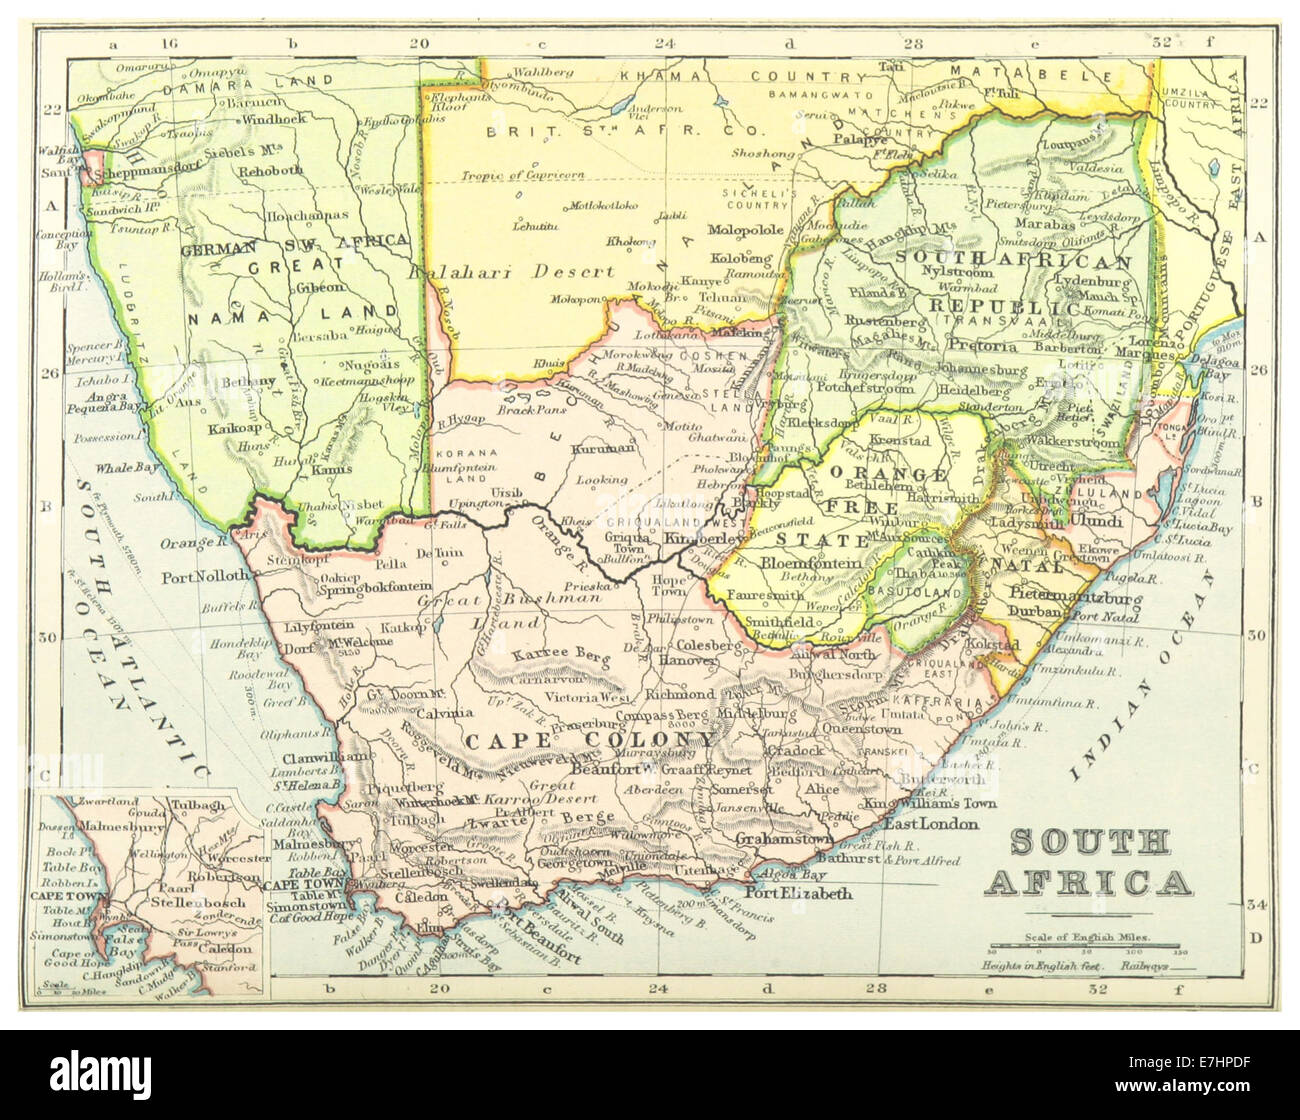 1899) MAP OF SOUTH AFRICA   comp. by Irvine Stock Photo: 73534875